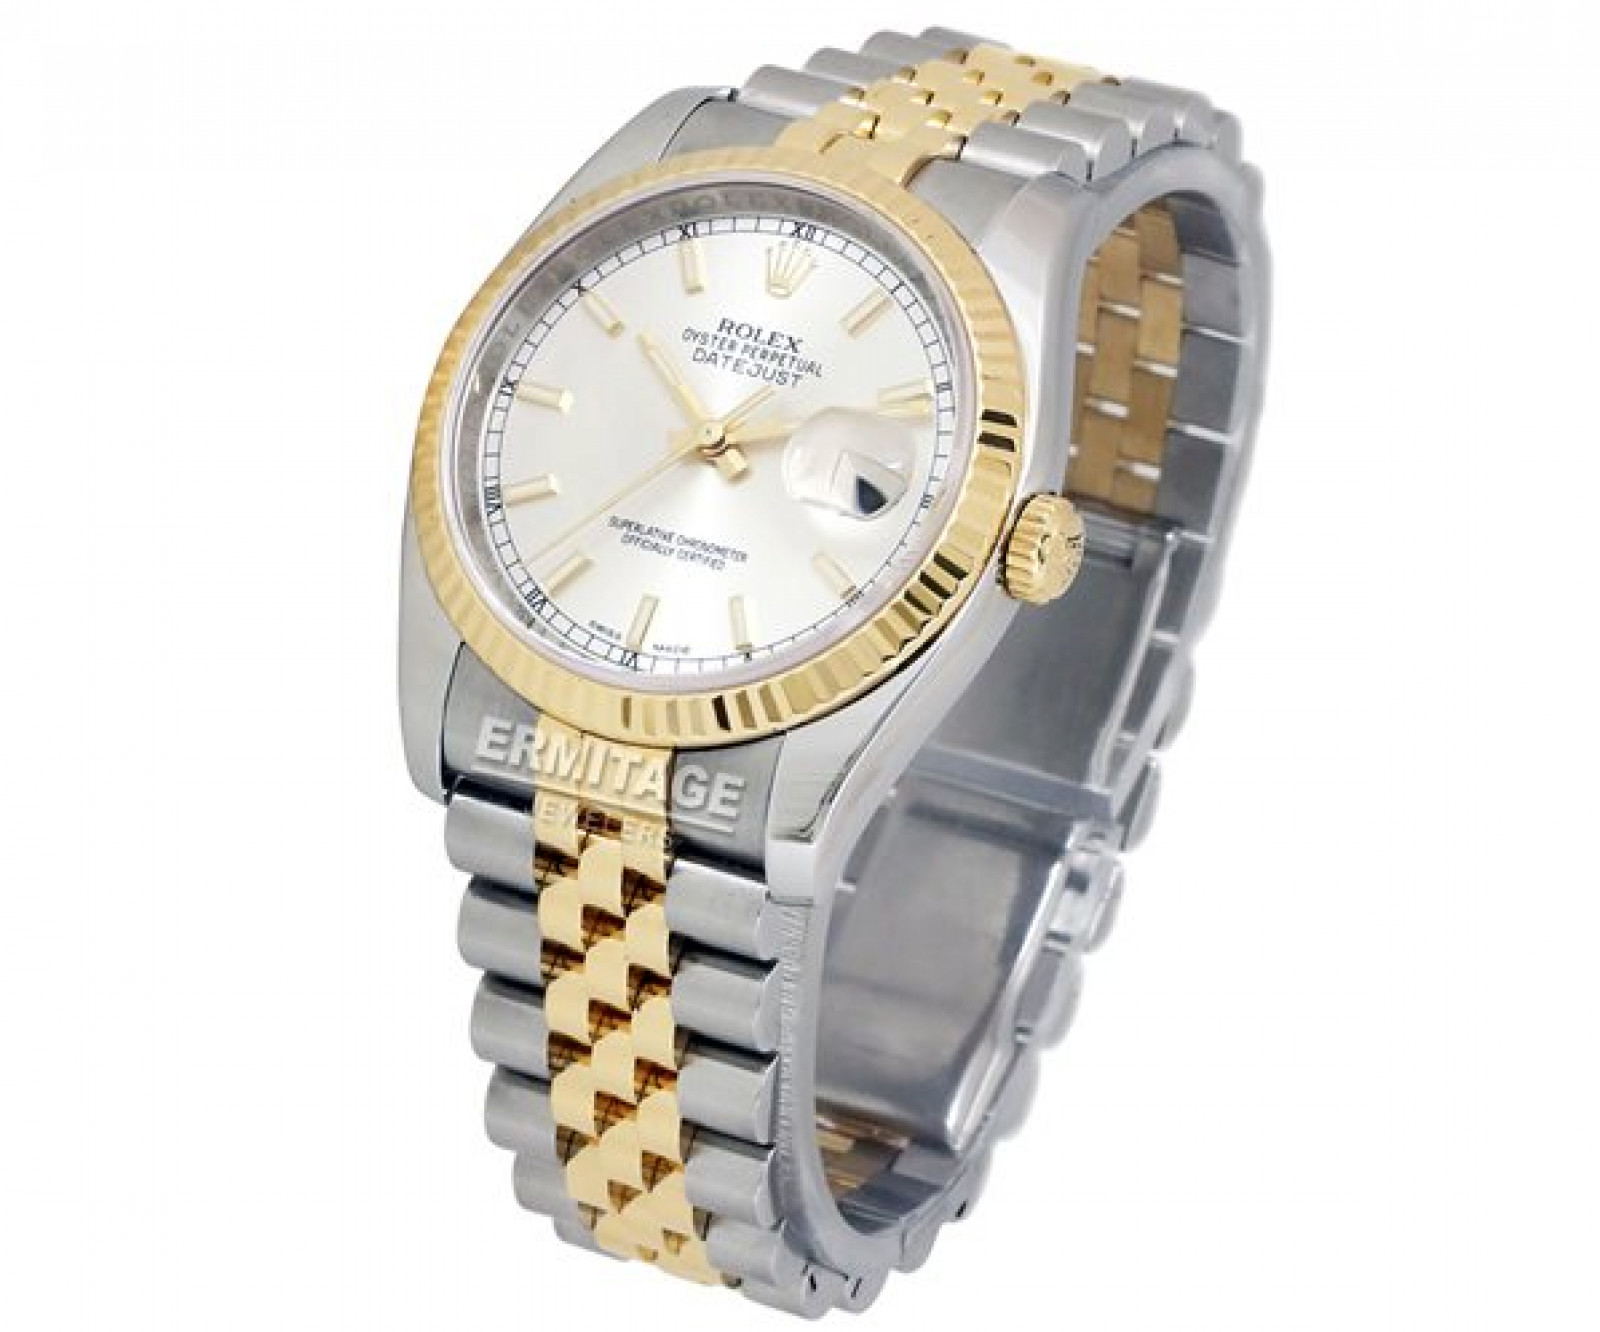 Pre-Owned Rolex Datejust 116233 Gold & Steel Year 2013